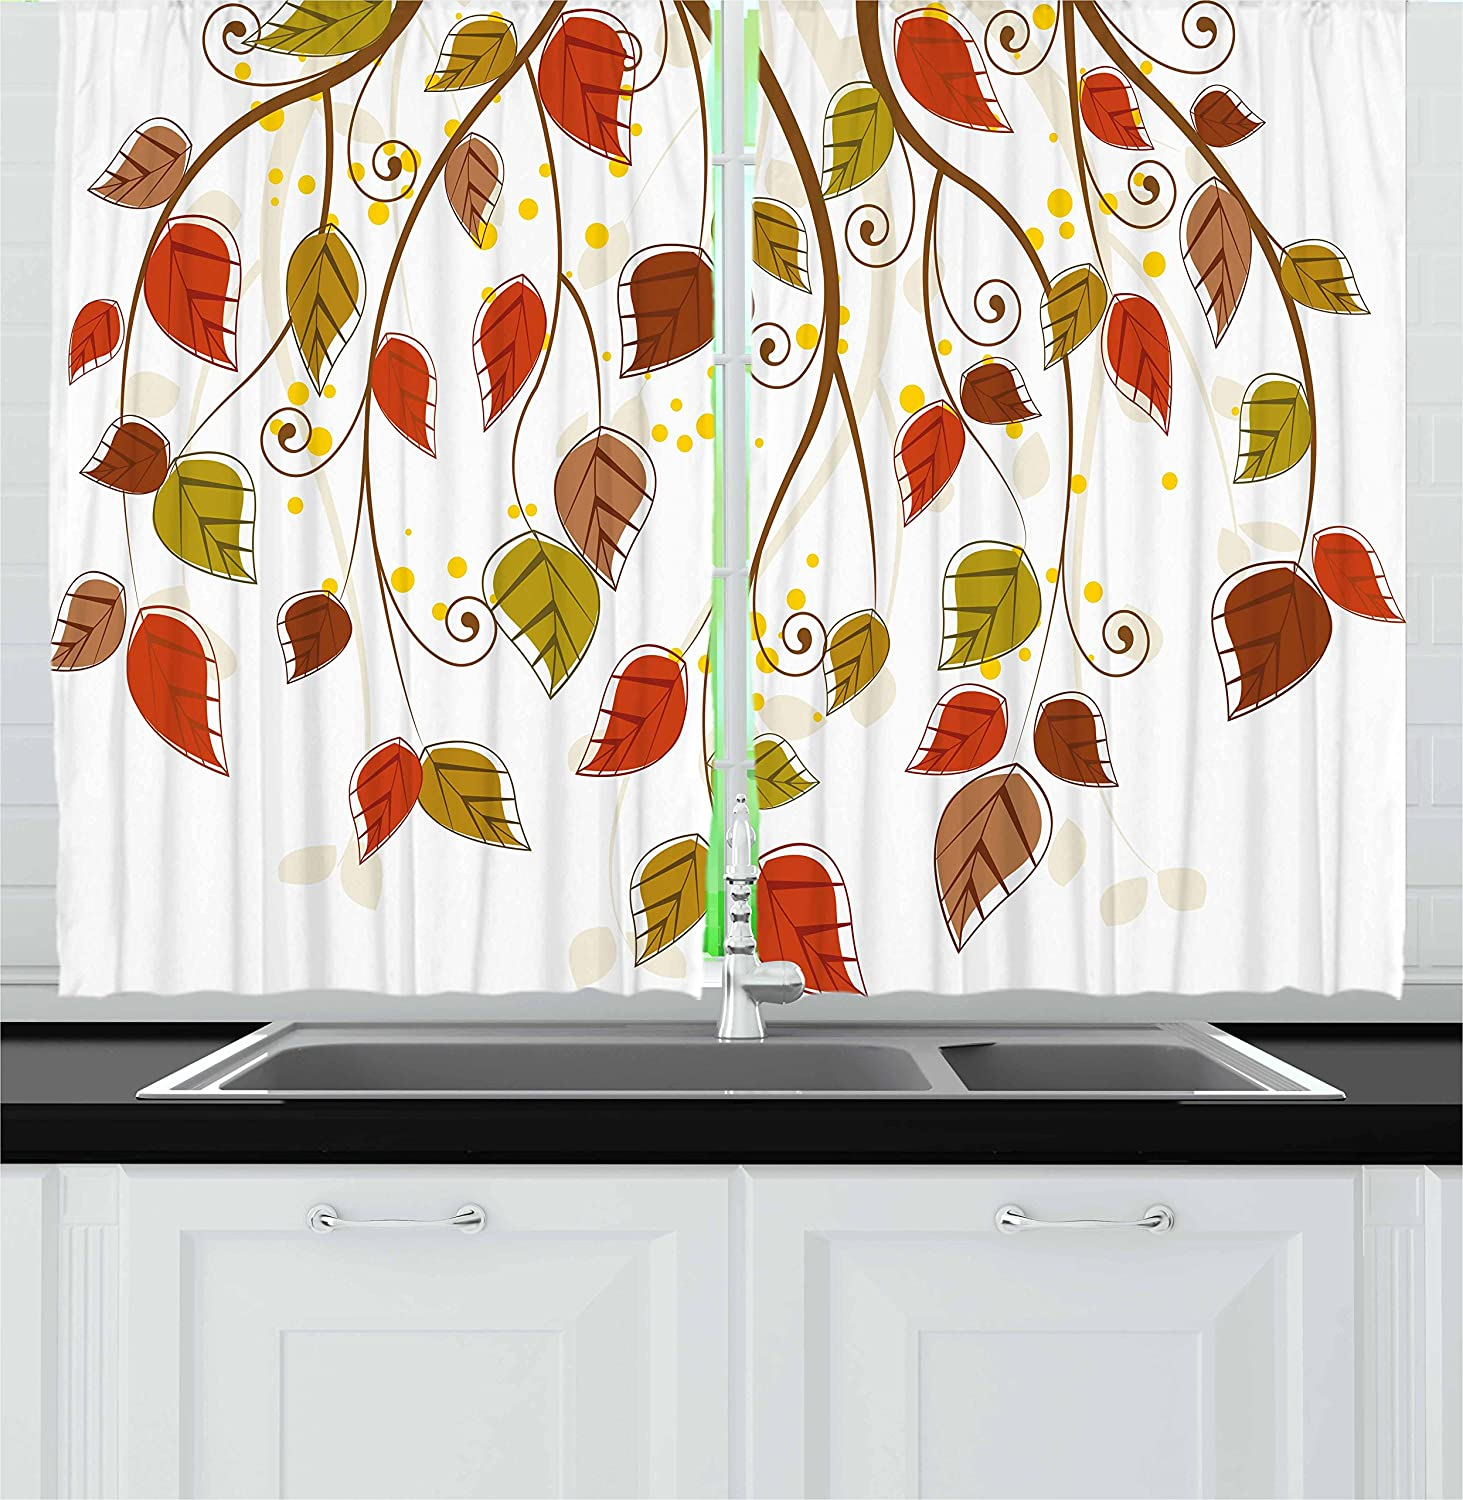 Amazon Com Ambesonne Autumn Kitchen Curtains Branches With Fall Leaves Seasonal Colors Nature Environment Foliage Window Drapes 2 Panel Set For Kitchen Cafe Decor 55 X 39 Burnt Sienna Brown Green Home